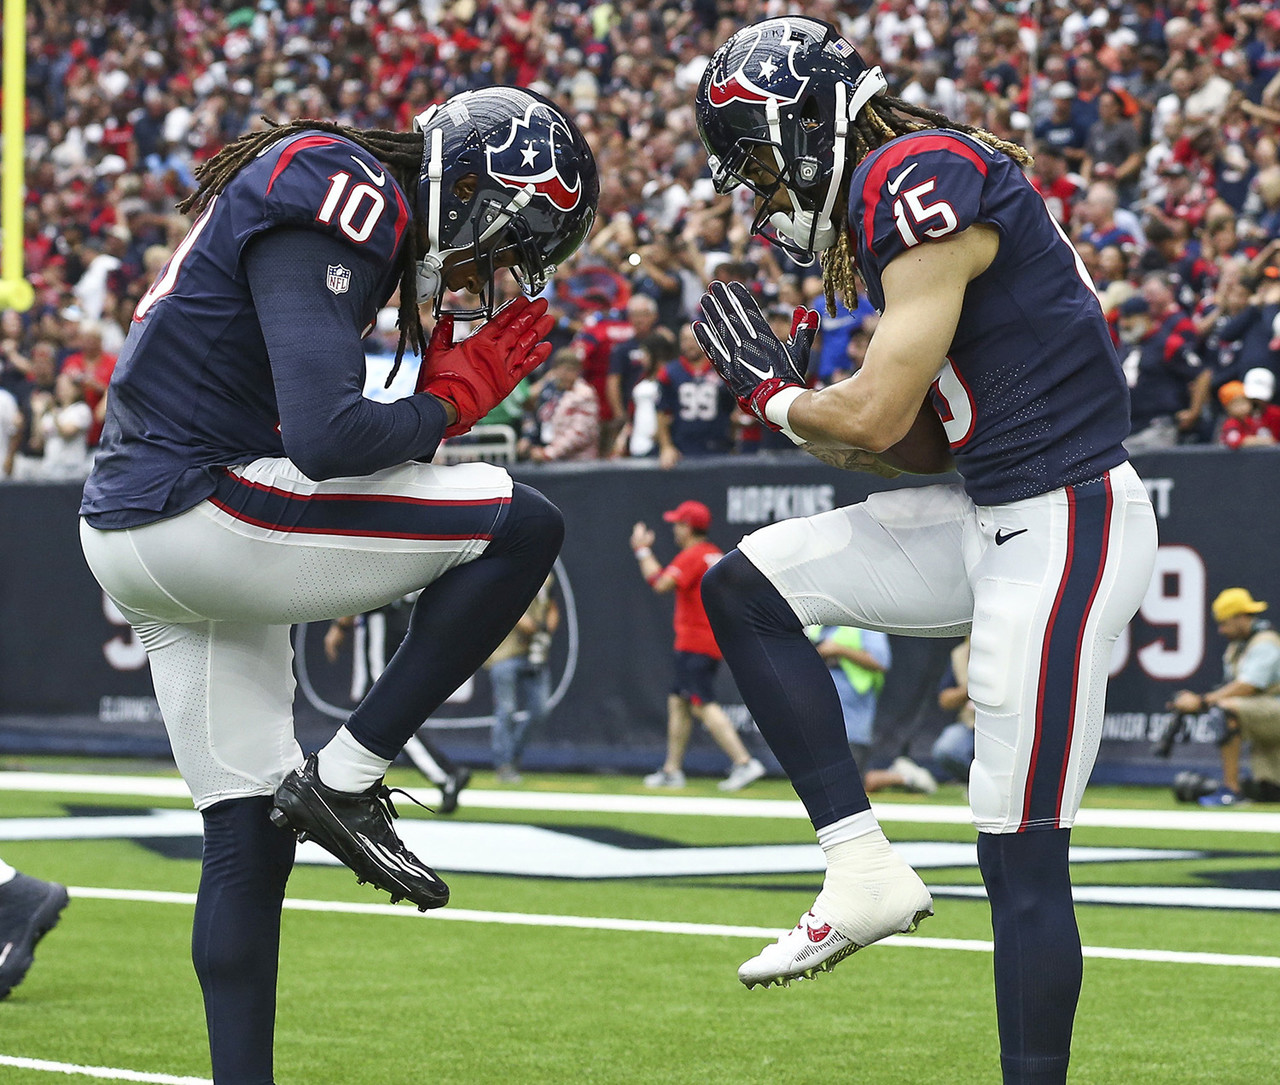 Houston Texans wide receiver Will Fuller (15) celebrates with wide receiver DeAndre Hopkins (10) after scoring a touchdown during the second quarter against the Tennessee Titans at NRG Stadium.